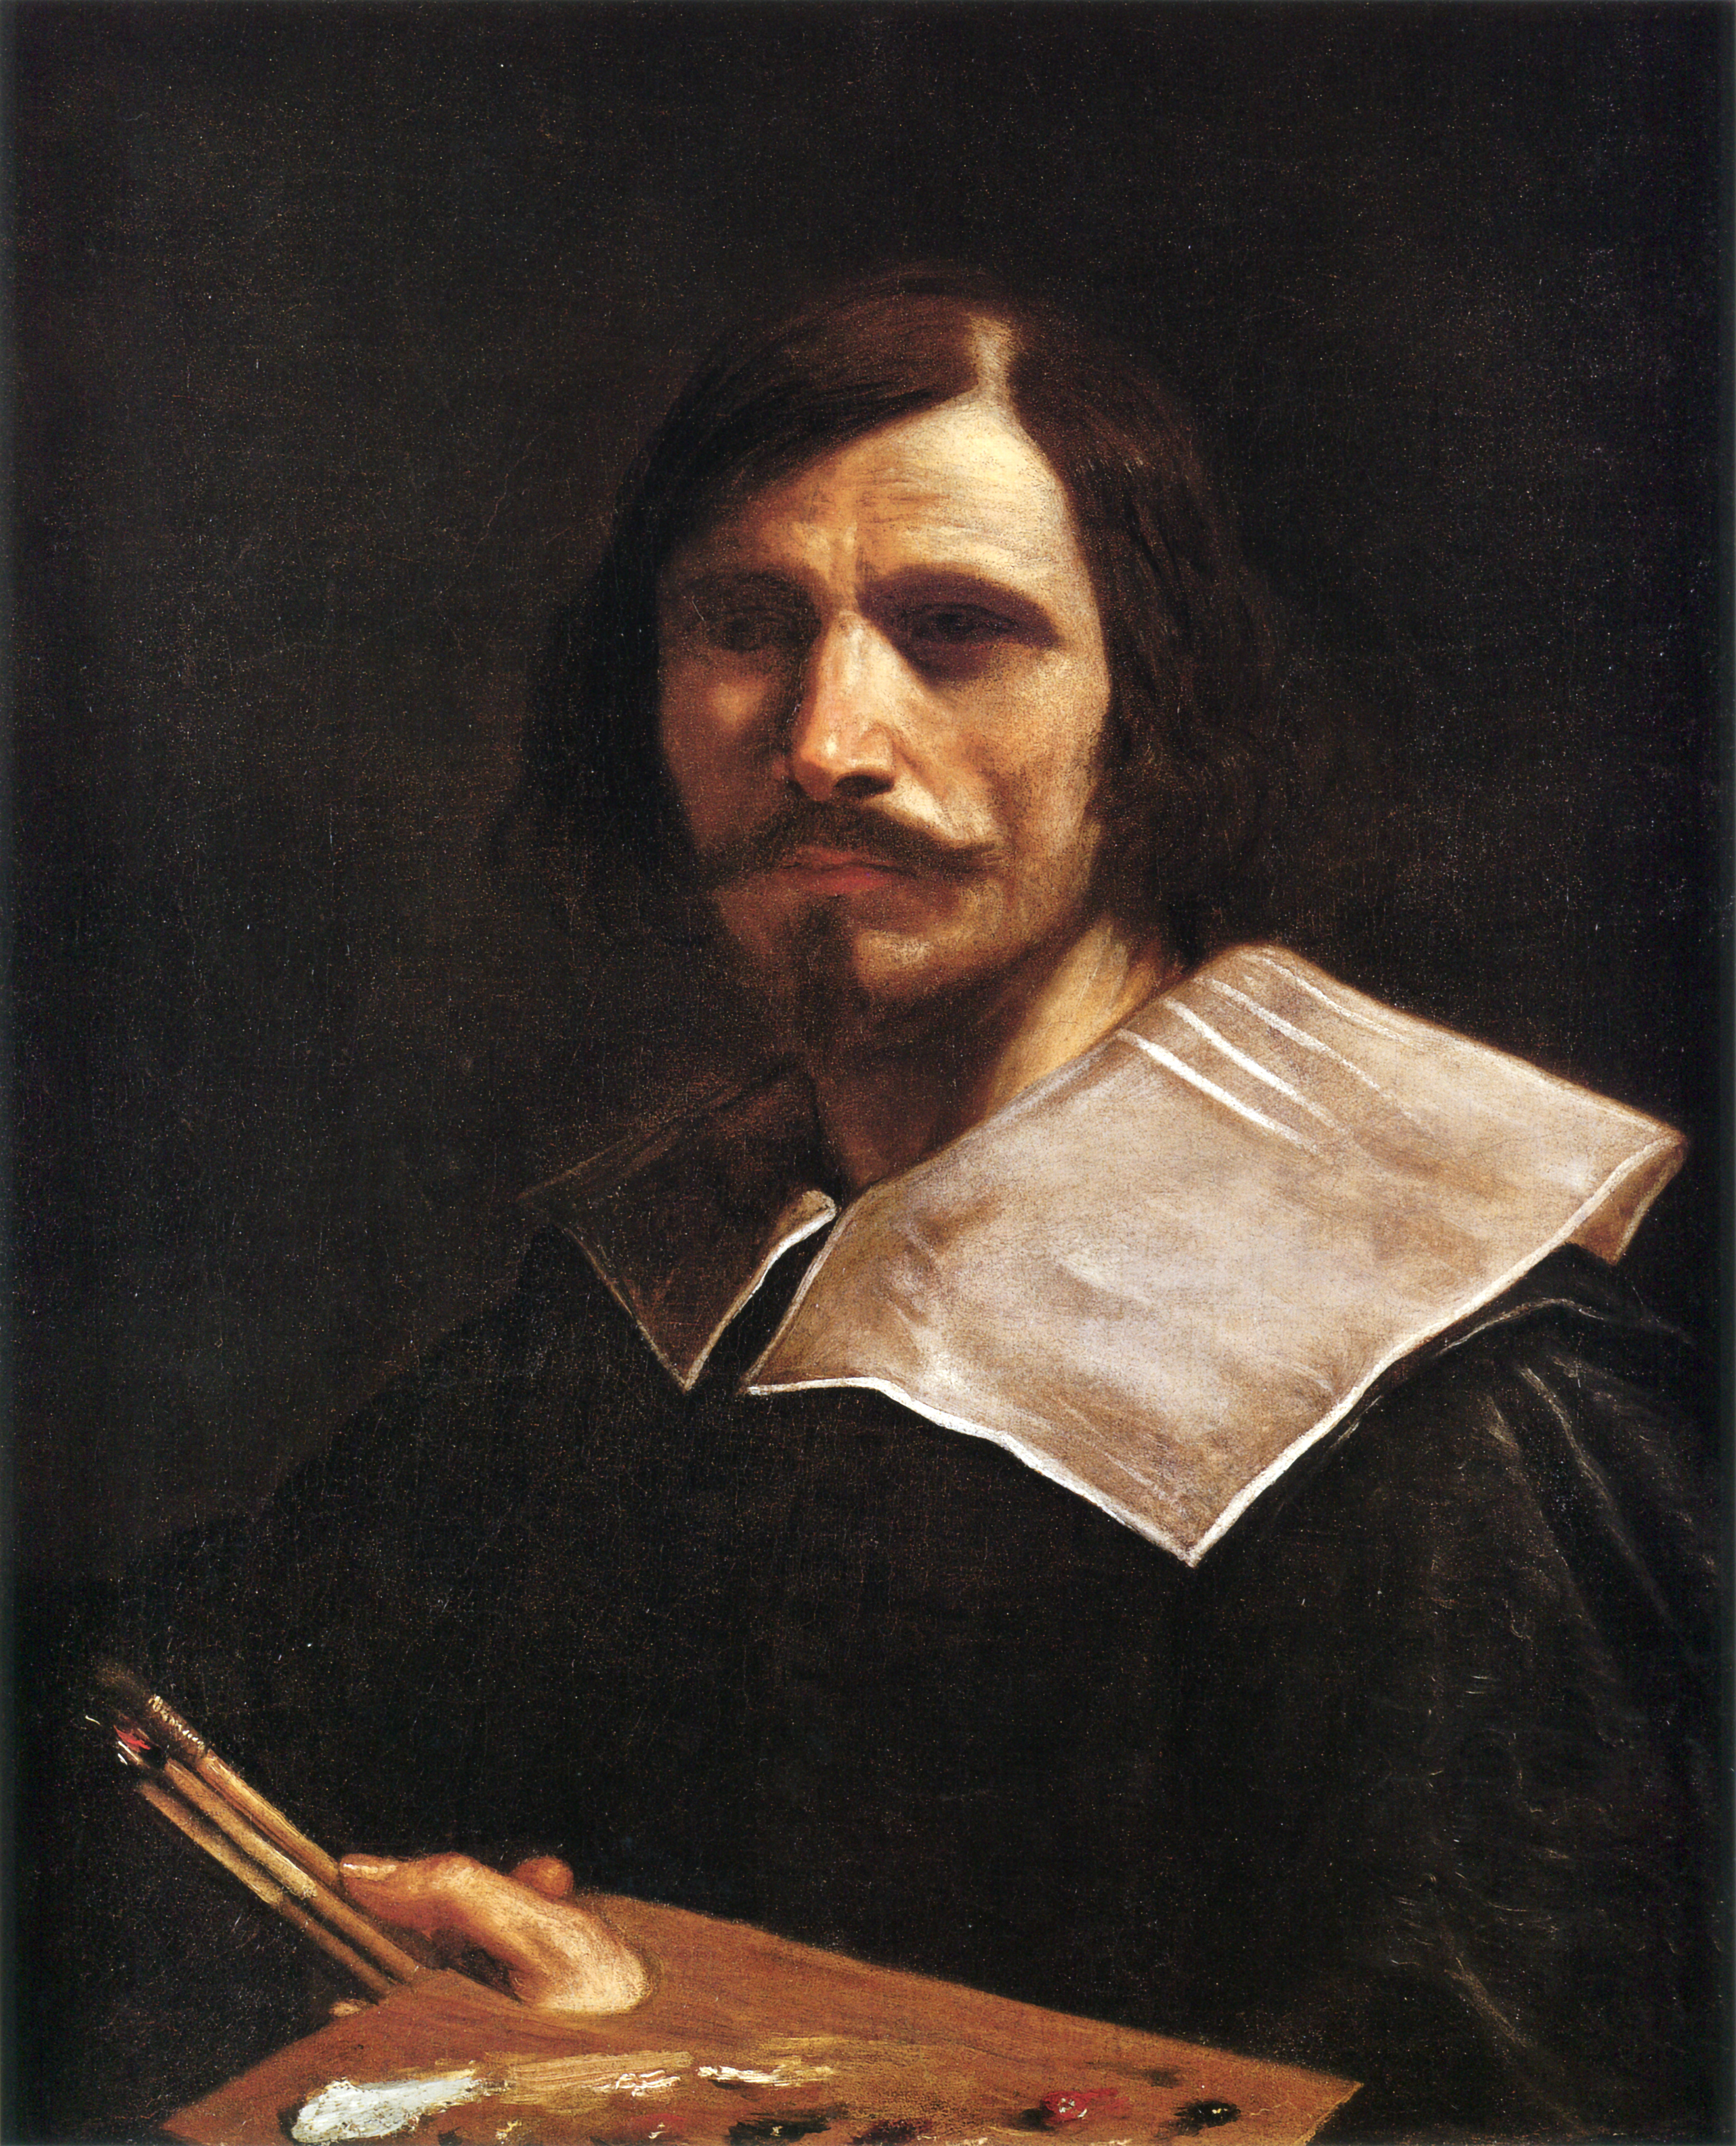 The 1639 painting, by Giovanni Francesco Barbieri (pictured), known as Guercino, had been stolen from the St. Vincent church of Modena between Aug. 10-13, 2014. (Wikimedia Commons photo)